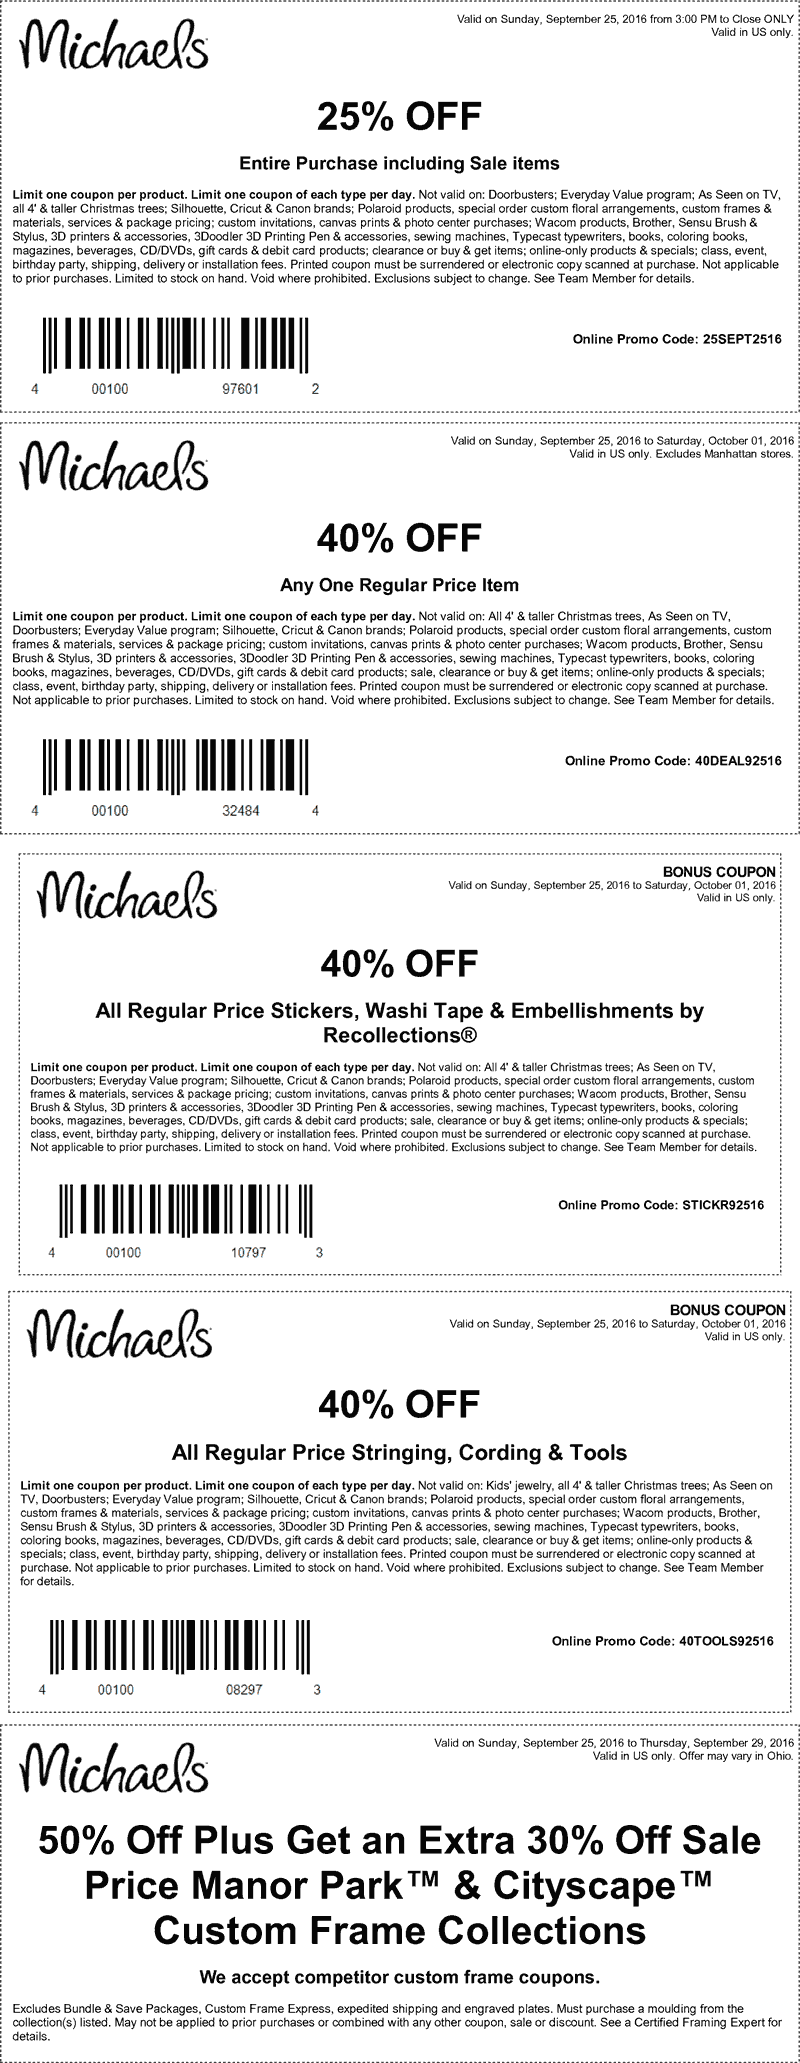 Michaels Coupon August 2017 40% off a single item & more at Michaels, or online via promo code 40DEAL92516